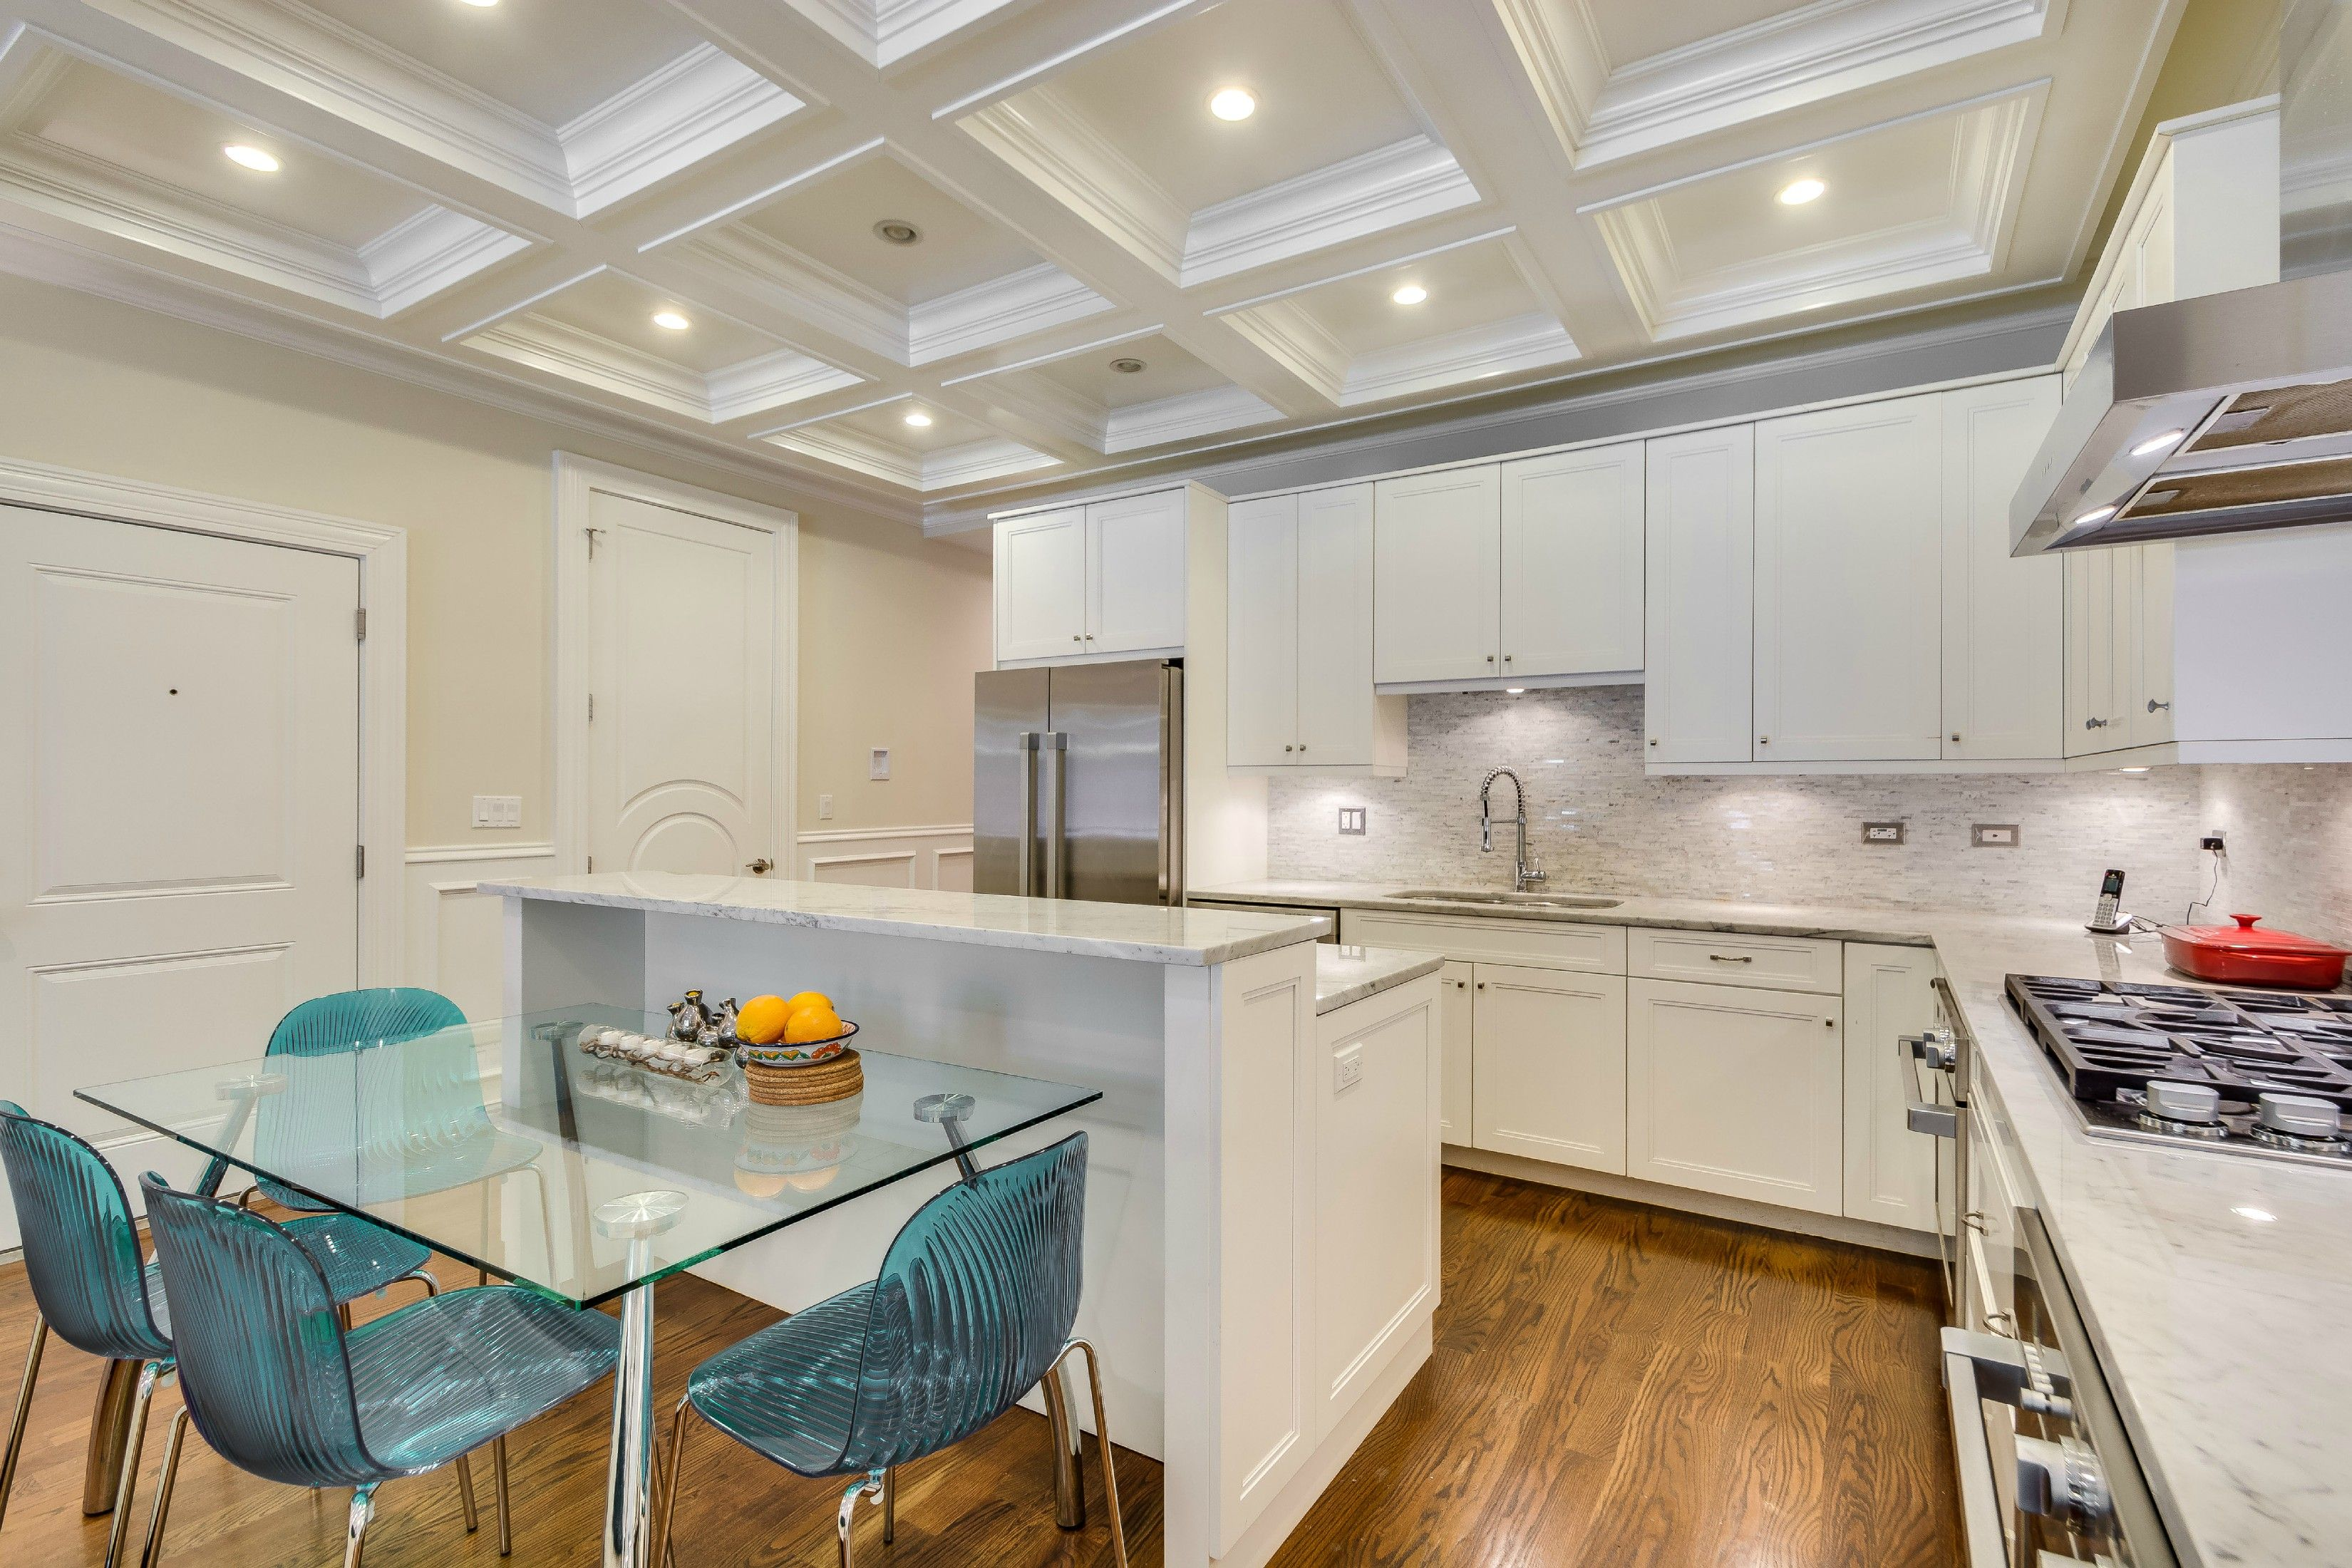 The White Kitchen At This Bright, Multi Level 4 Bedroom Apartment In  Bucktown Comes With